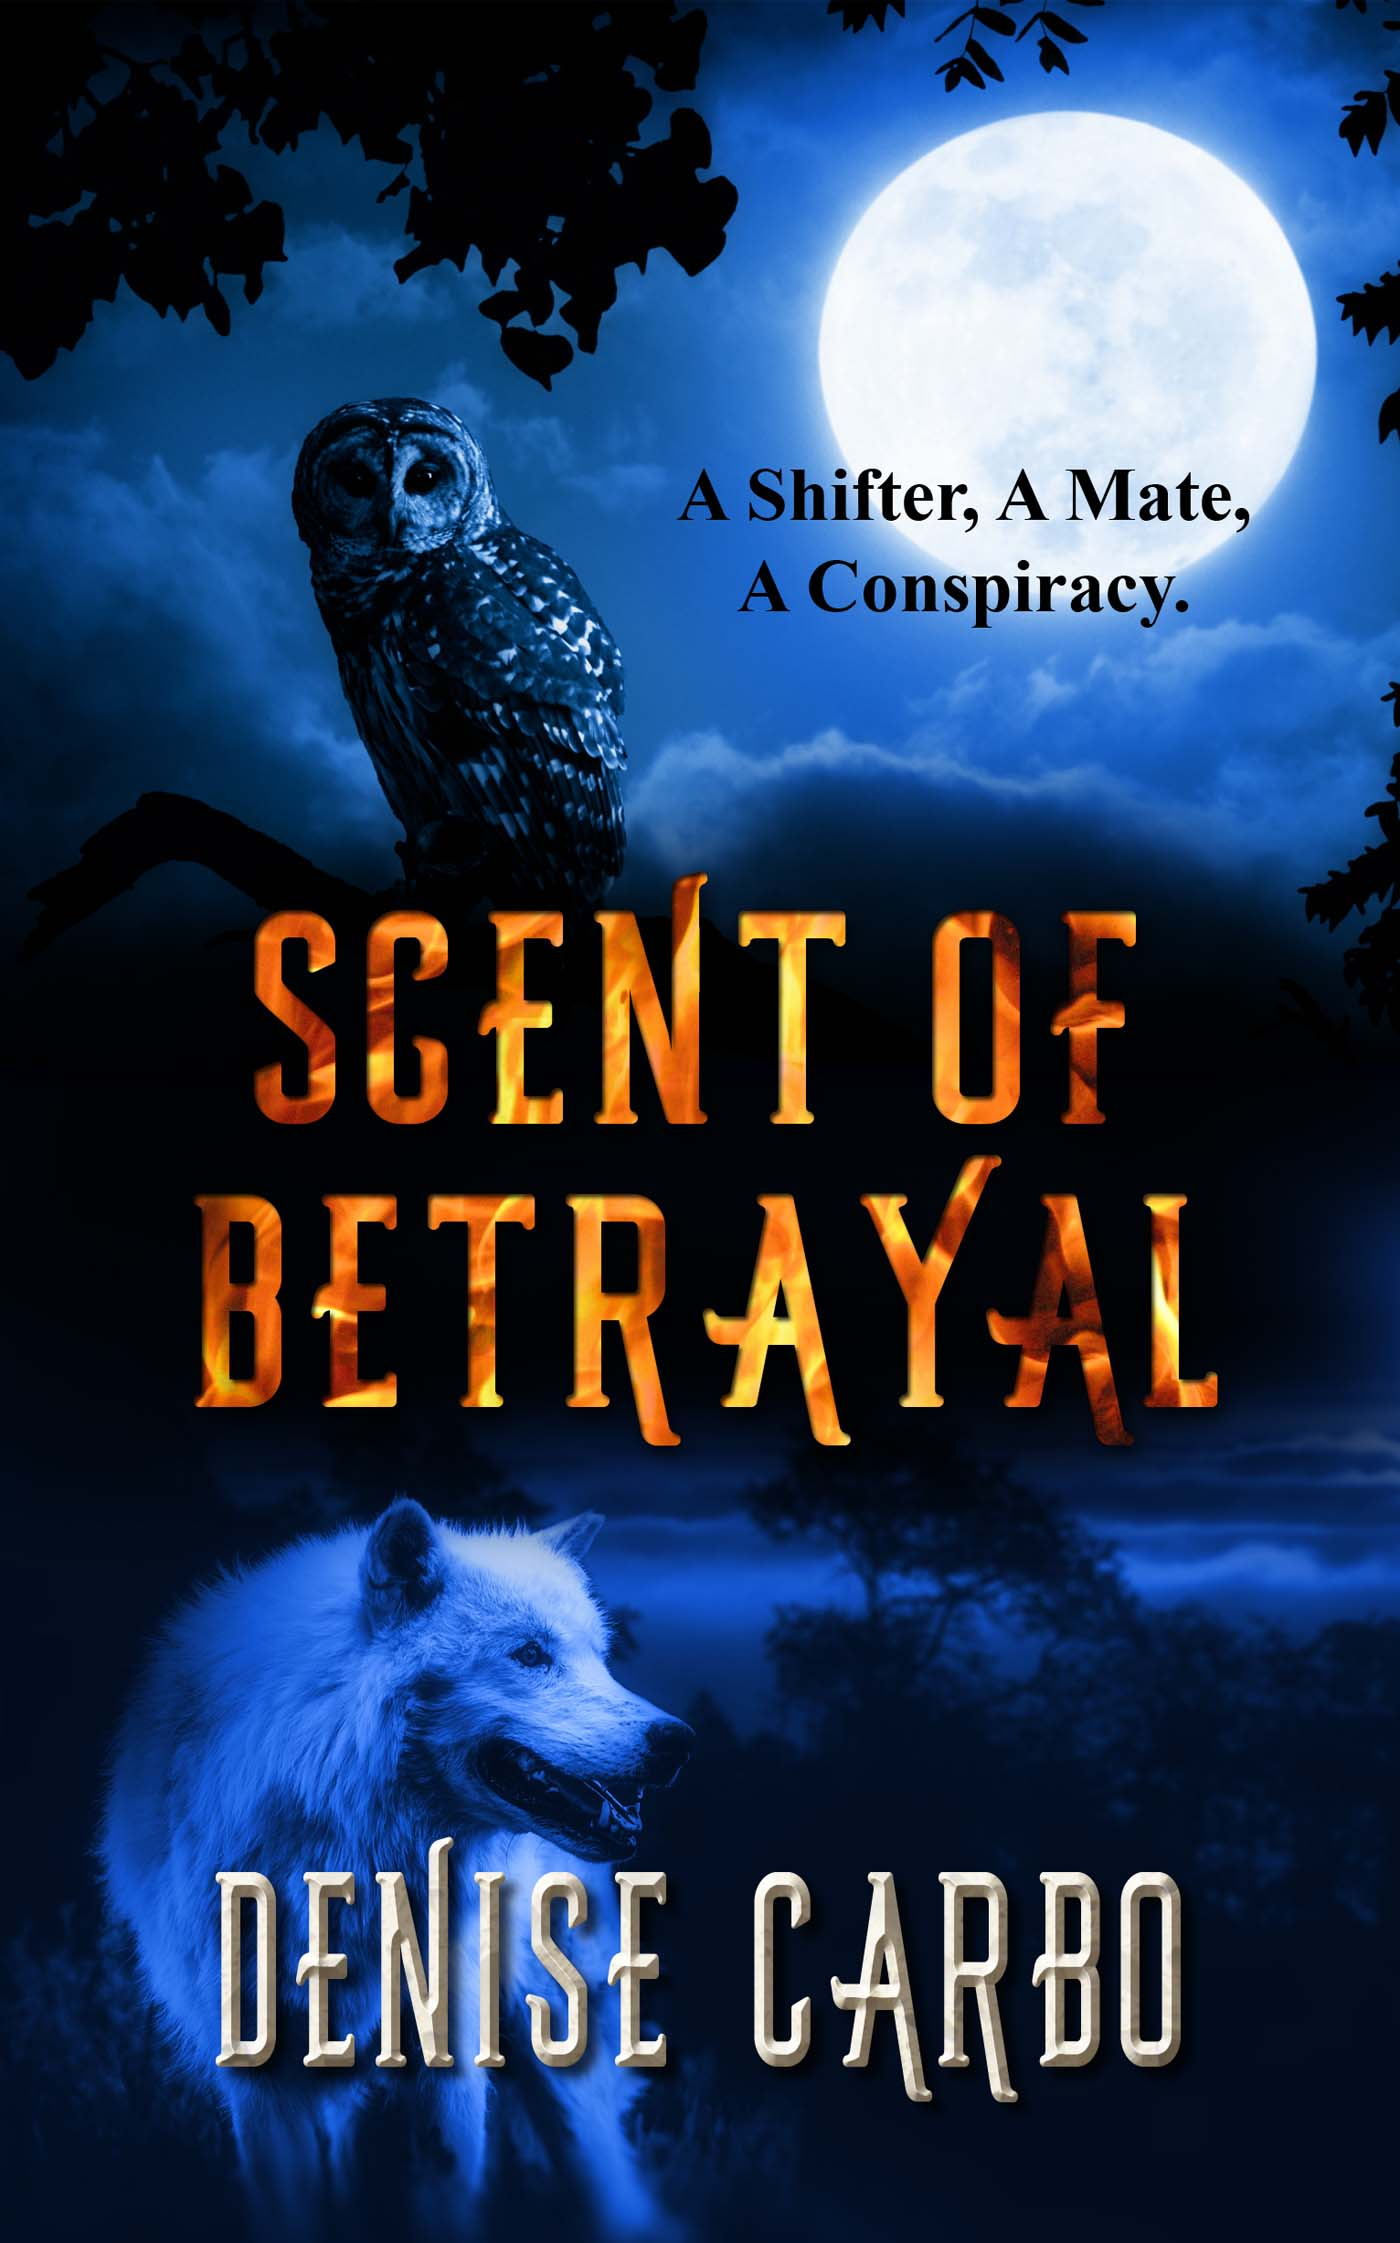 A Shifter, A Mate, A Conspiracy. - Wolf shifter Davis Campbell is on a mission. His job is to babysit a woman from a rival clan. He believes all he has to do is get her back to Scotland. What he doesn't figure on is her possibly being his mate.Bethany Leitner, an owl shifter, has been betrayed, attacked, framed, and left for dead. Trust in herself and others is hard to find. So when her self-appointed guardian begins to bark orders, she is ready to show her talons.